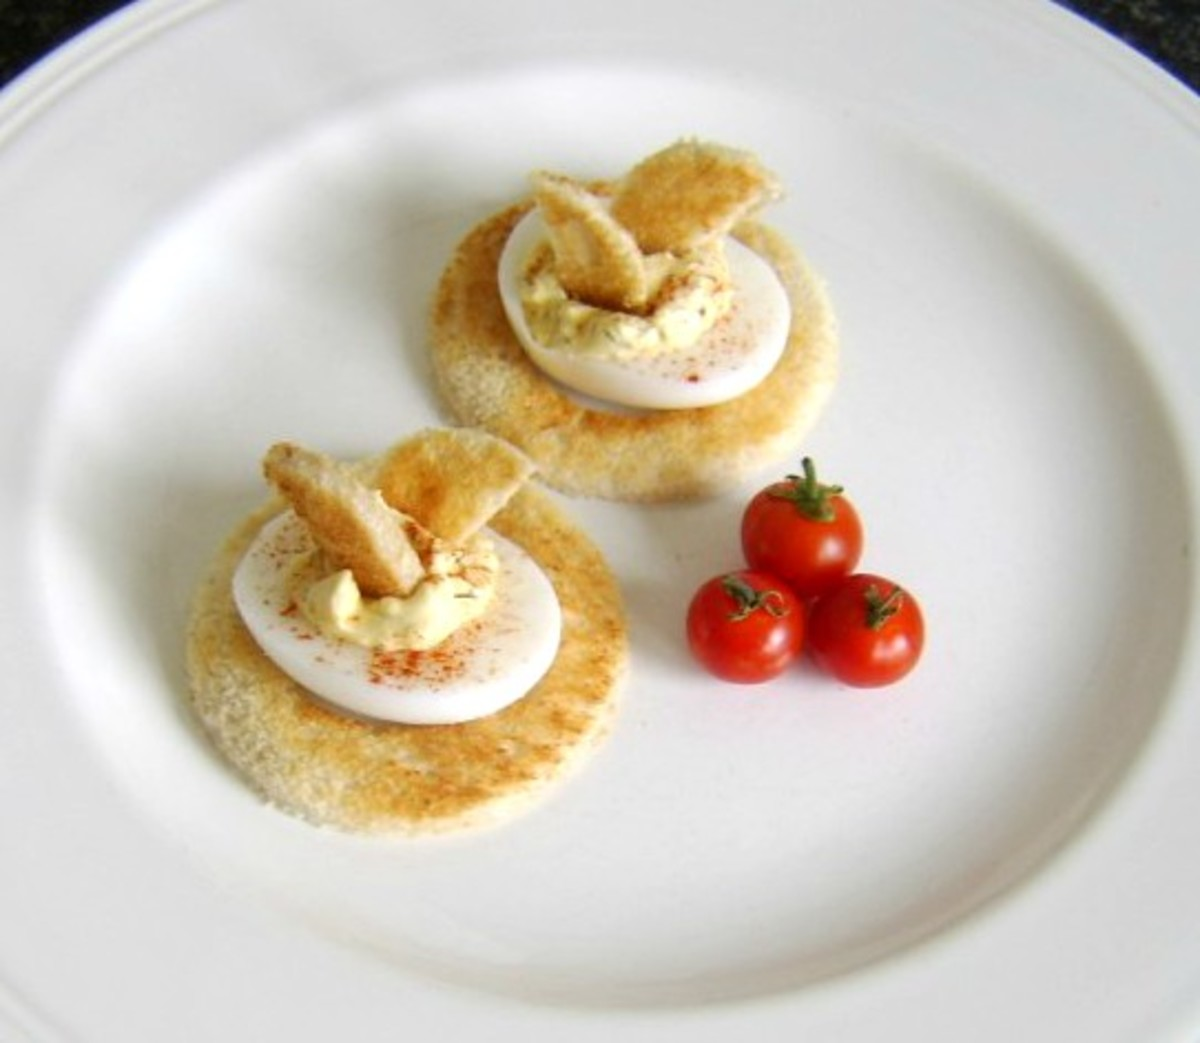 Basic deviled duck eggs are served on circles of toast and garnished with cherry tomatoes